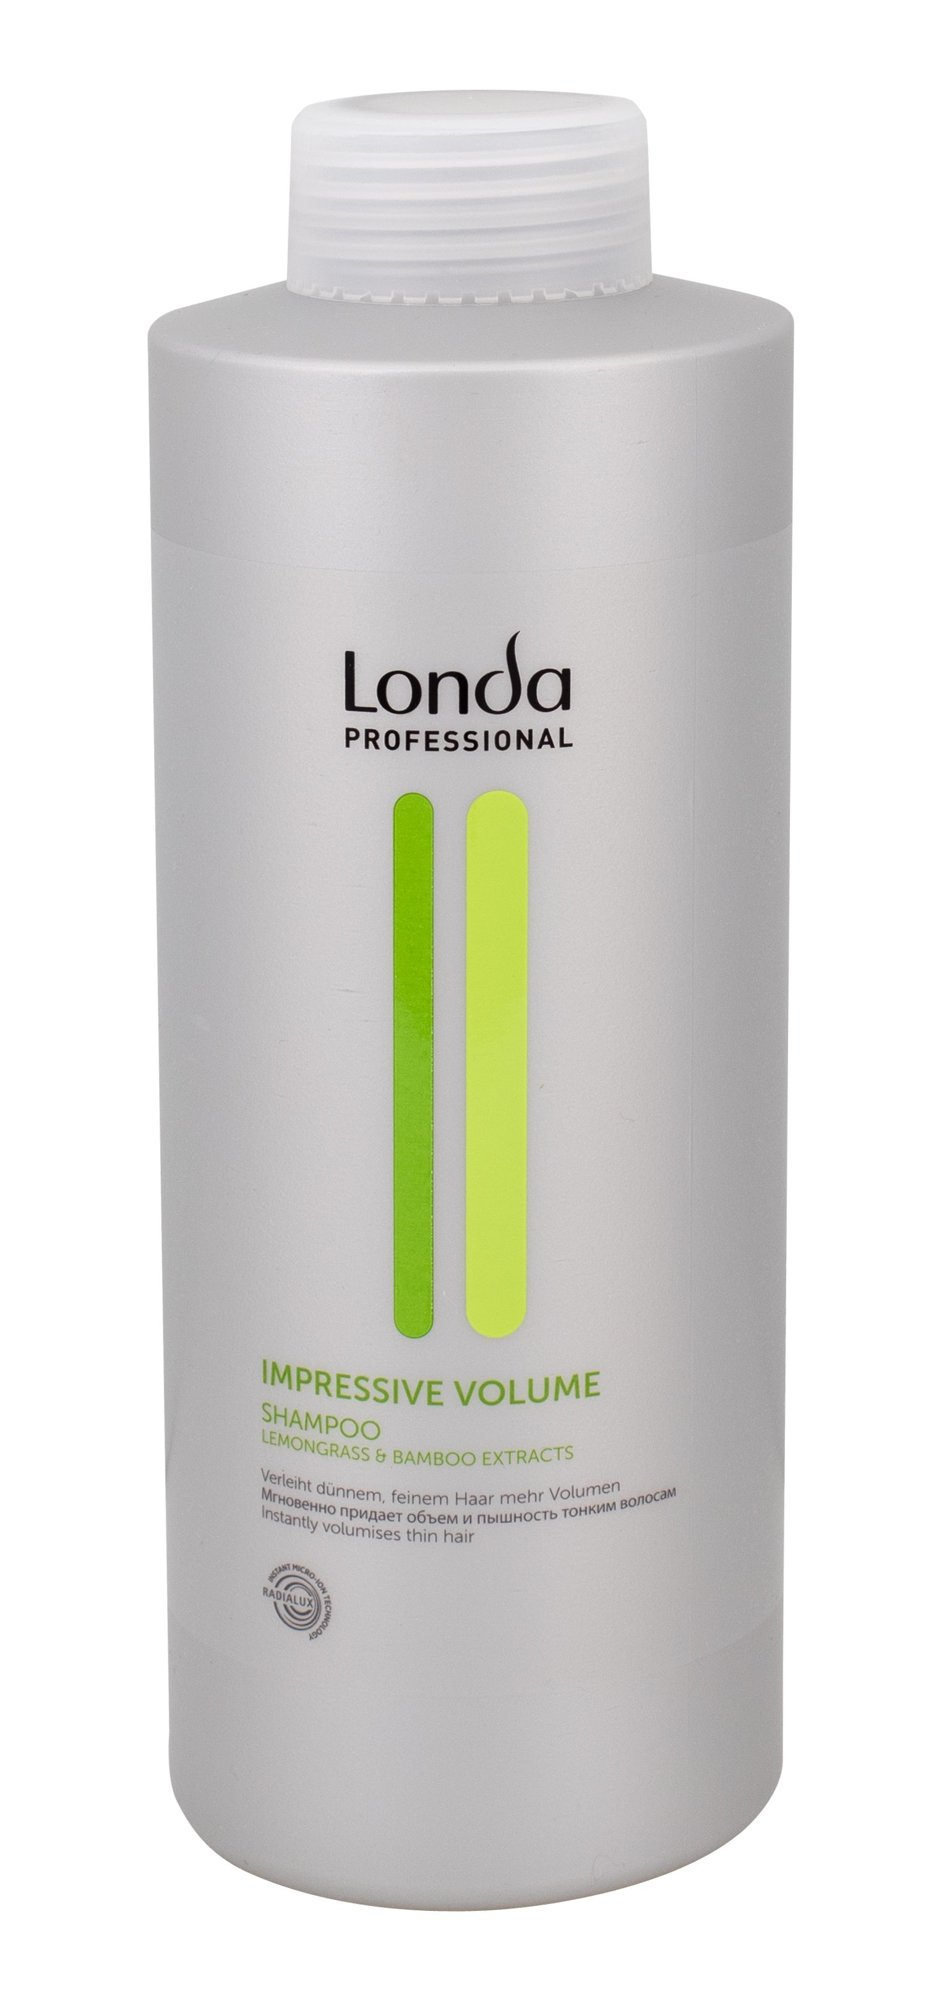 Londa Professional Impresive Volume Cosmetic 1000ml